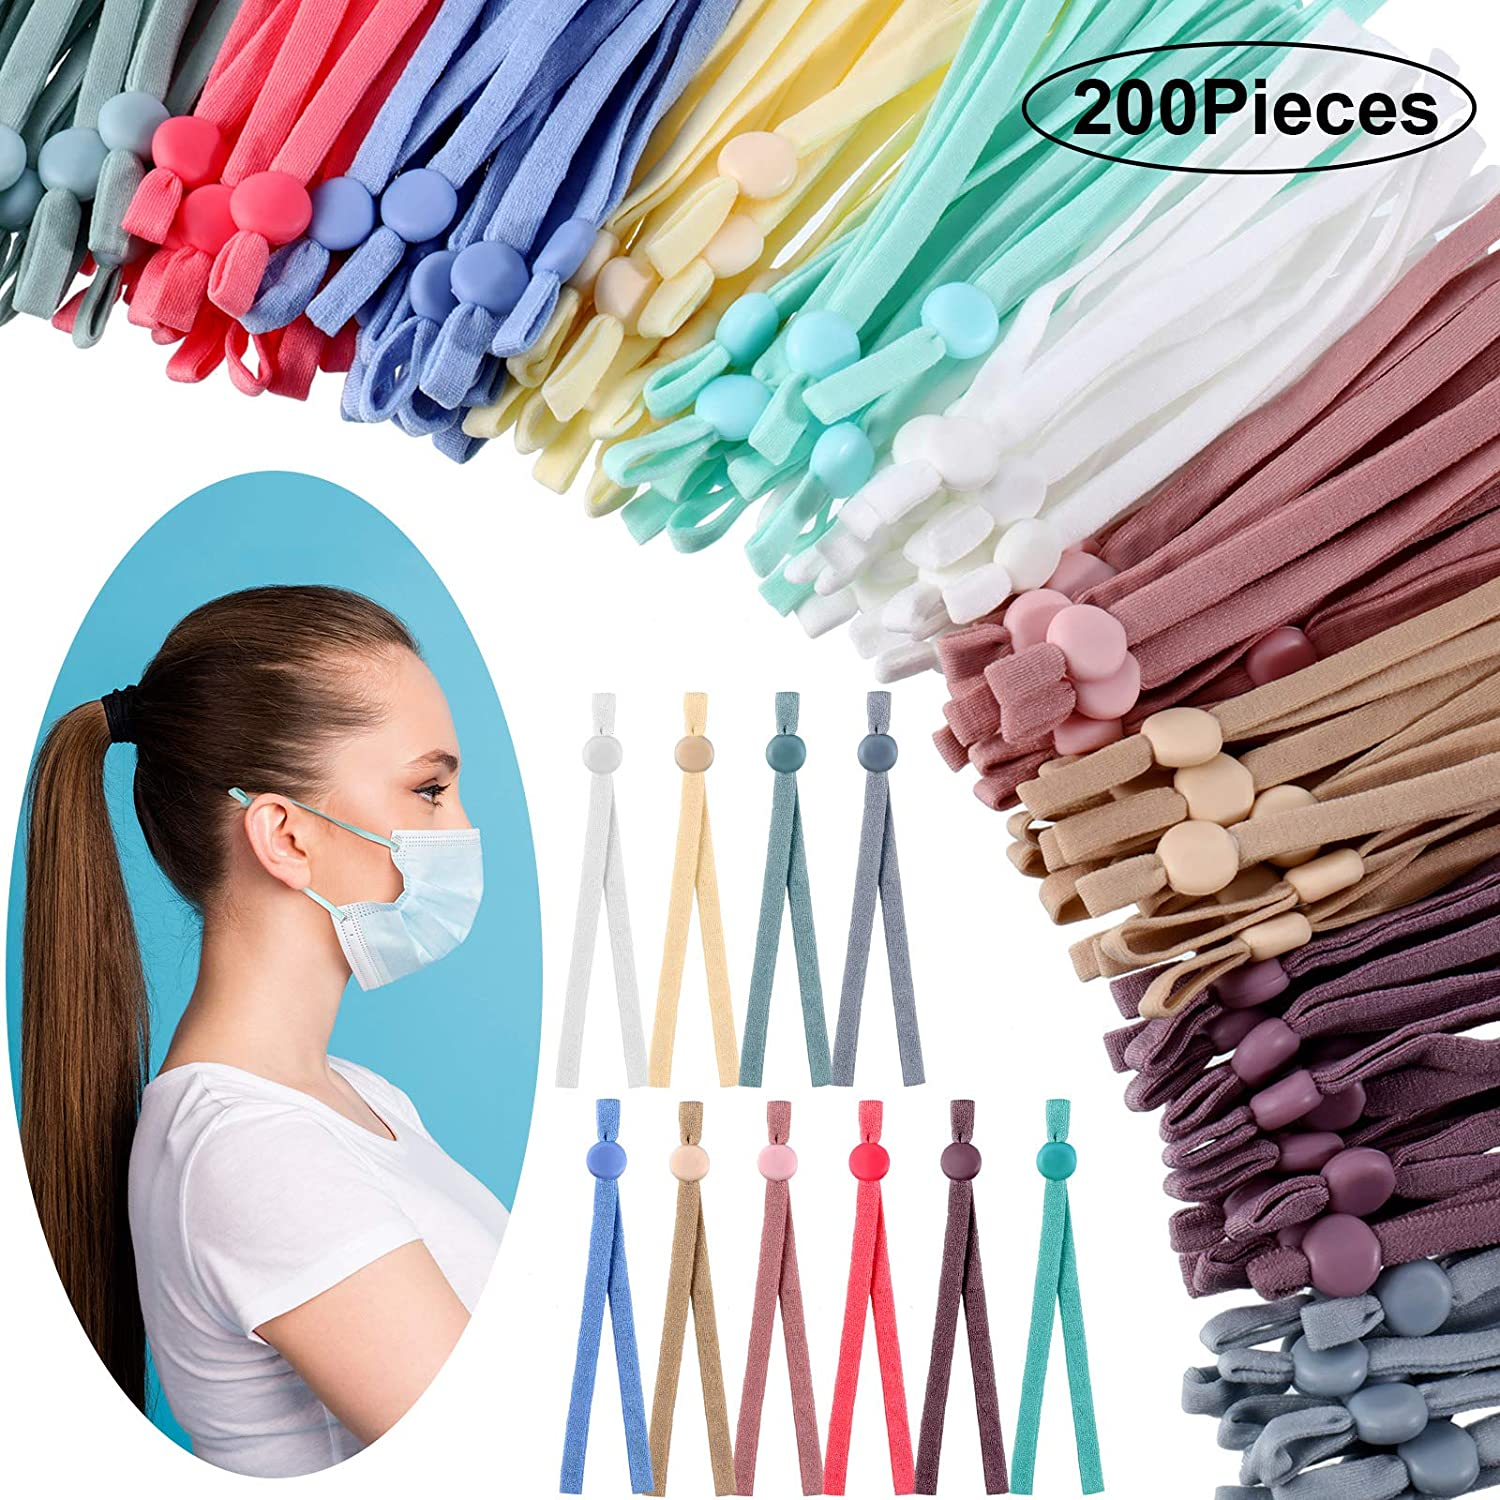 120 Pieces Elastic String Bands with Adjustable Buckle Stretchy Ear Band Strap Elastic Cord Bands Earloop Anti-Slip Strap for DIY Sewing Making Supplies 12 Colors